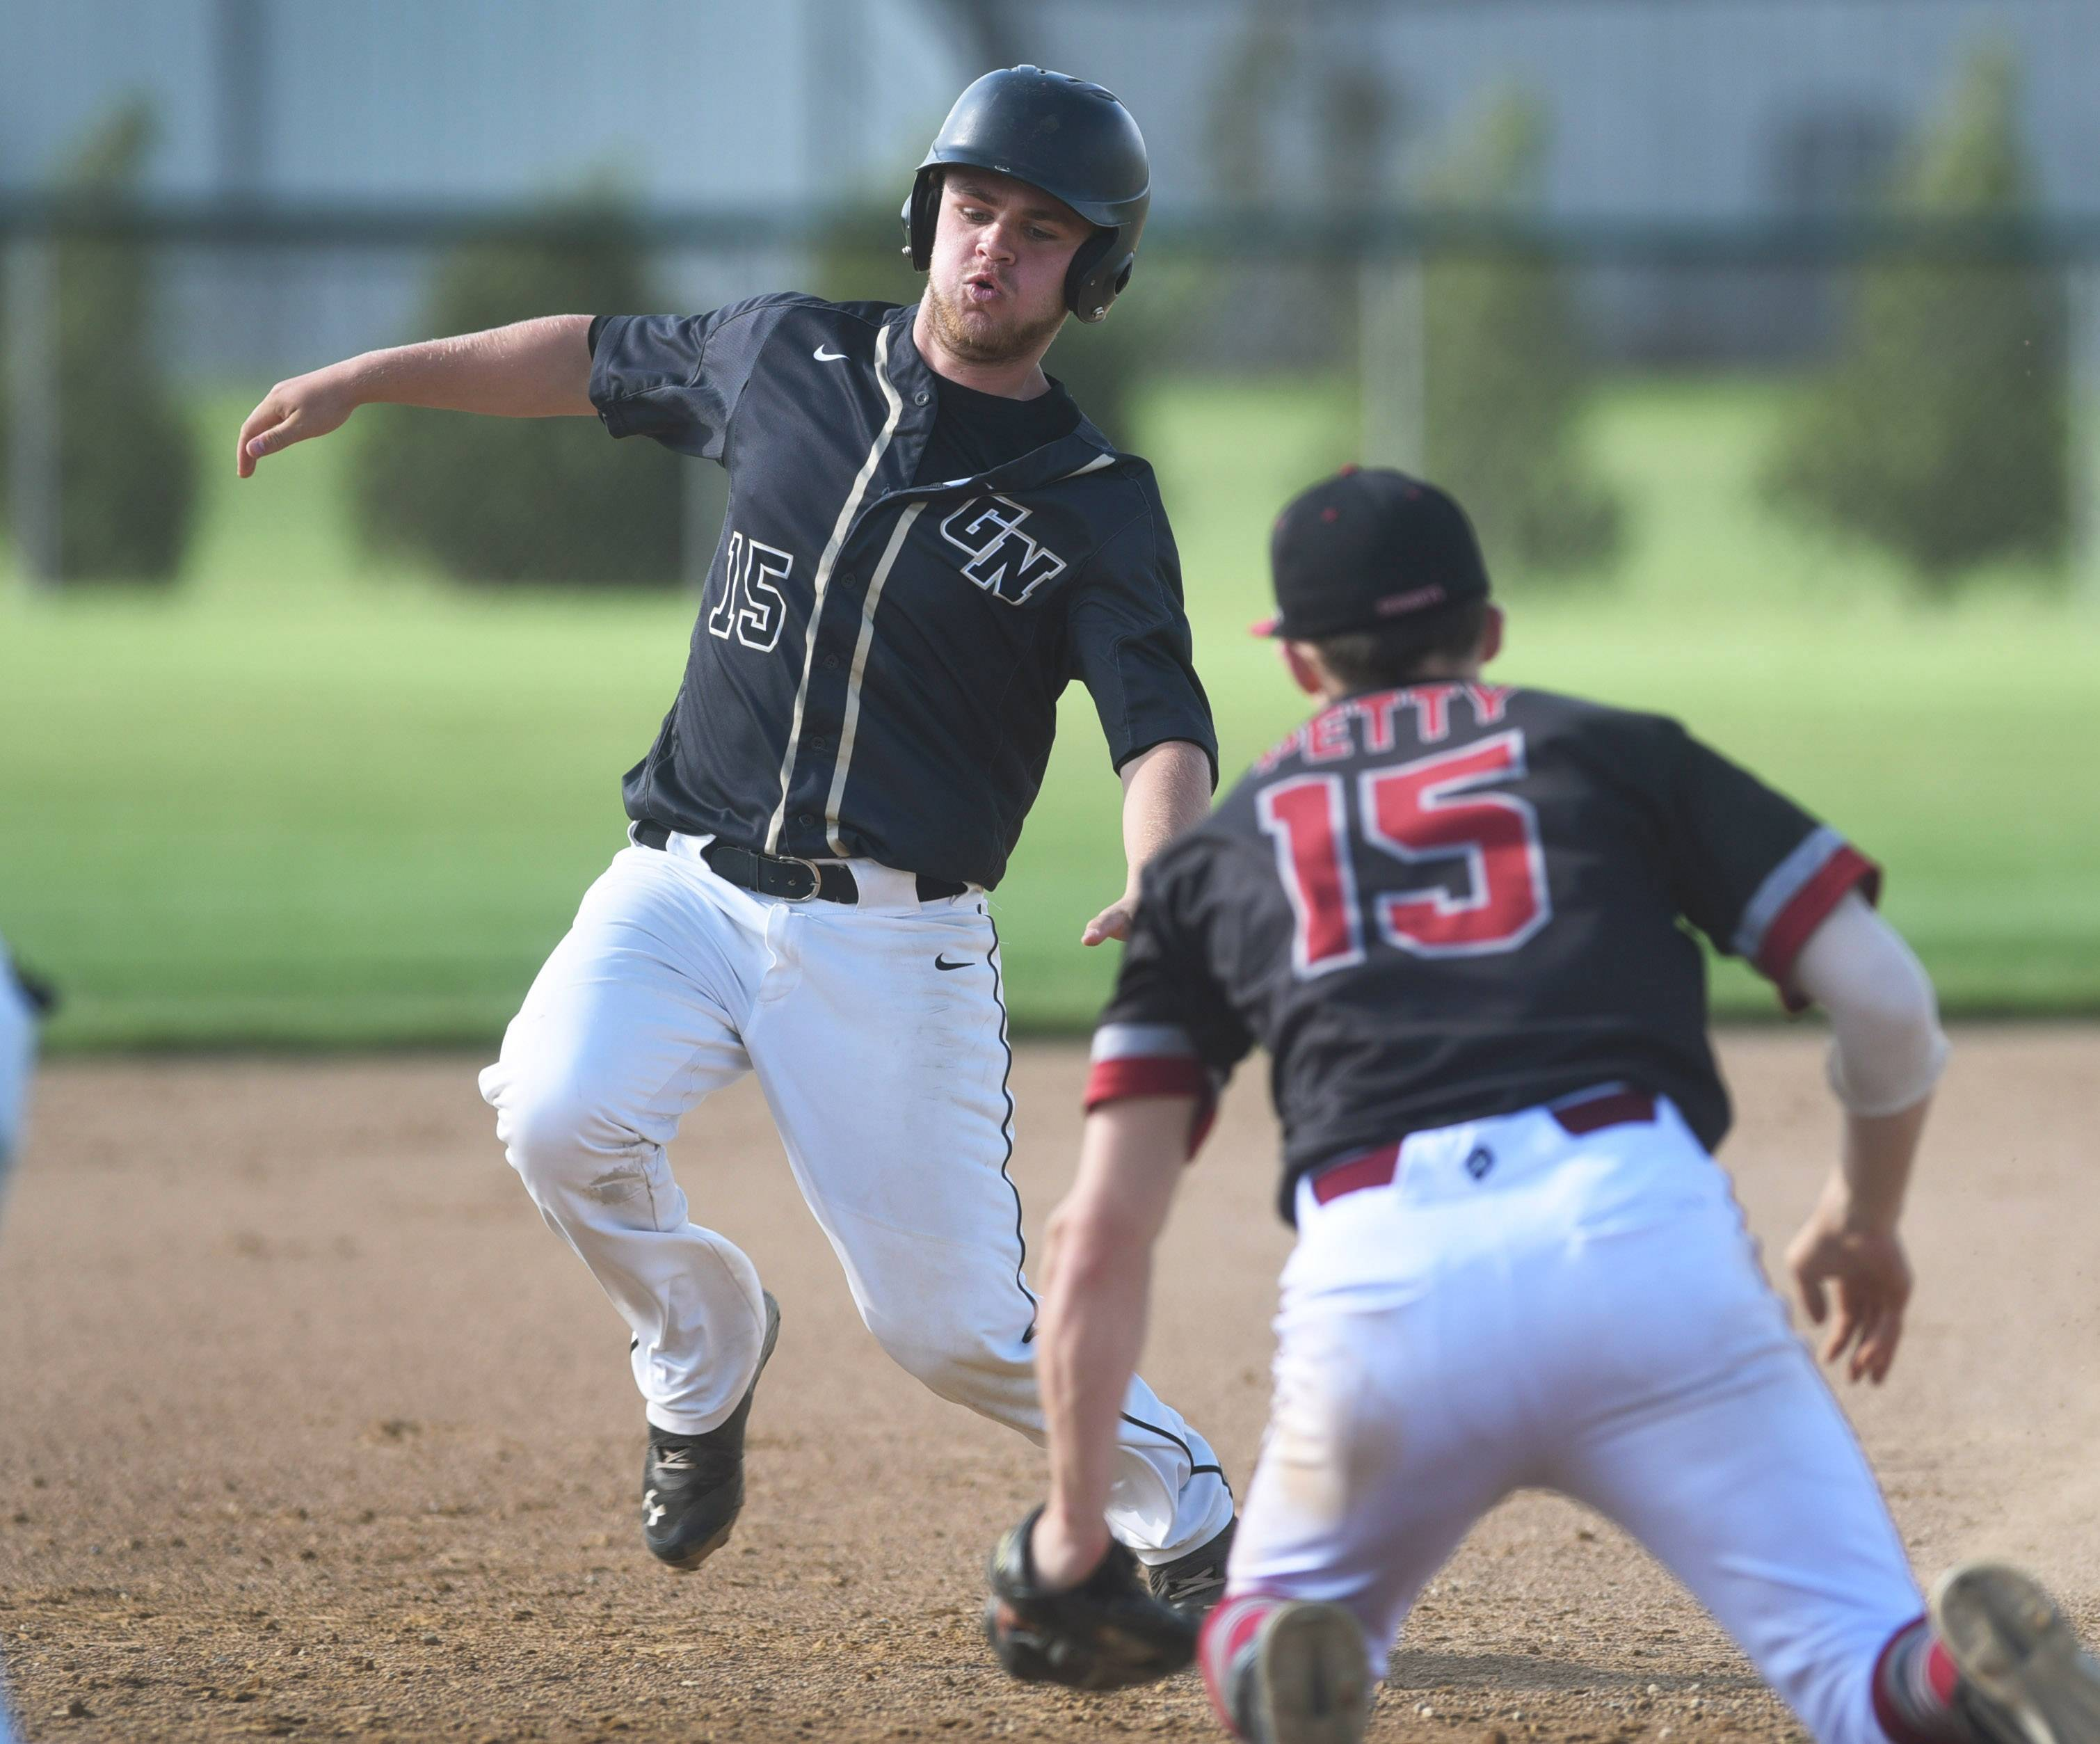 Grayslake North's Regen Marsell (15) begins his slide into third base but is tagged out by Antioch's John Petty (15) during Thursday's game at Antioch.